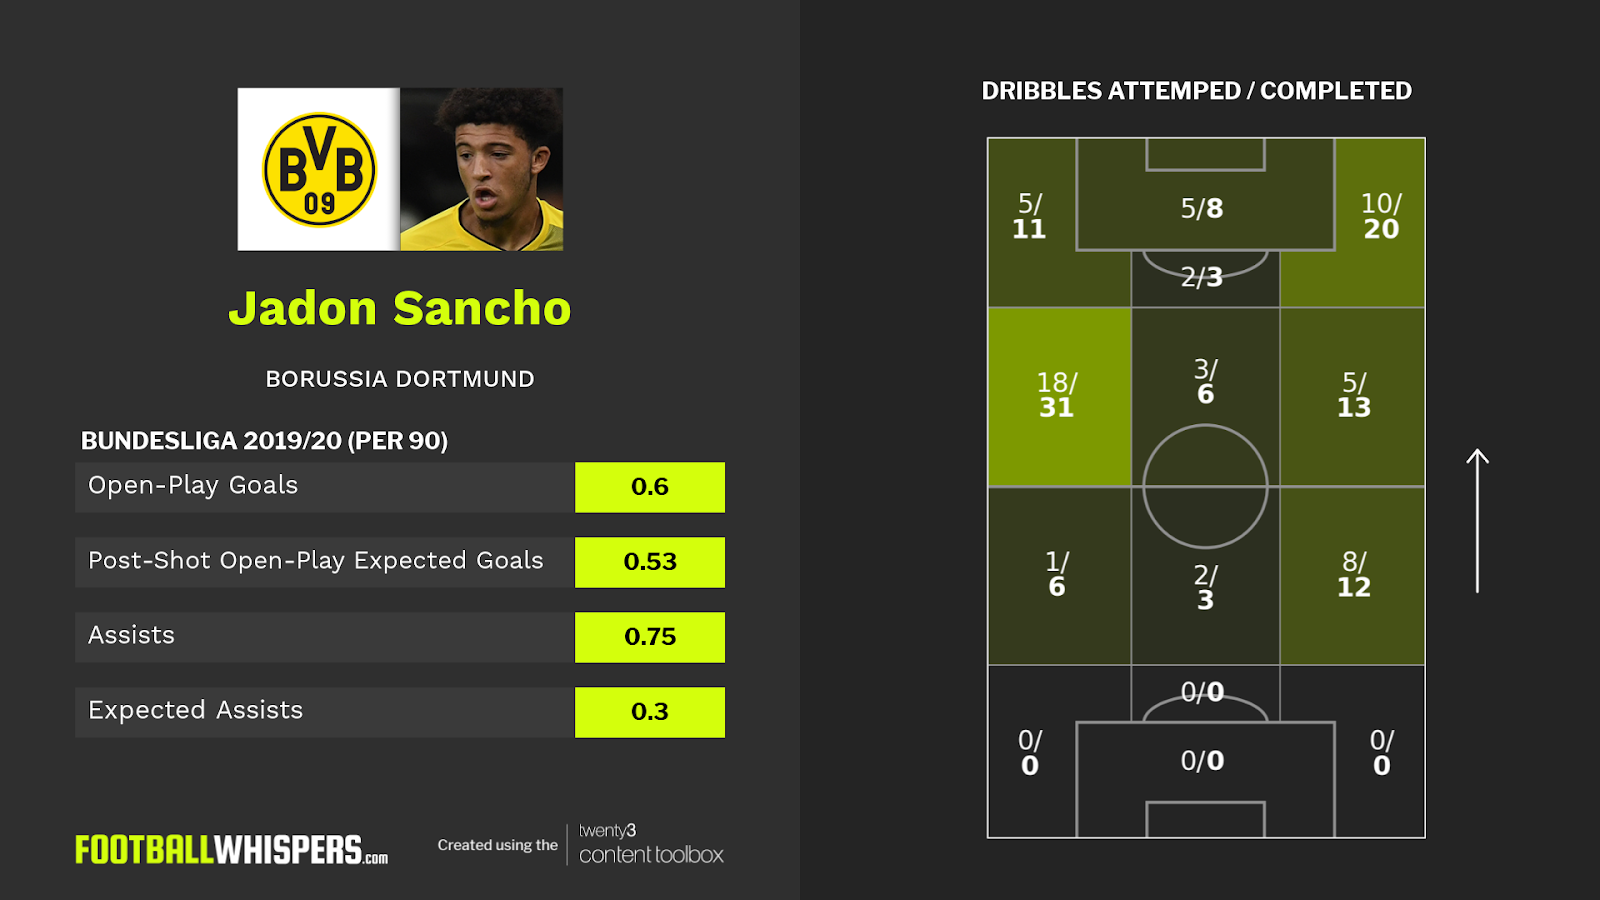 Dribble map for Borussia Dortmund winger Jadon Sancho who is wanted by Manchester United.